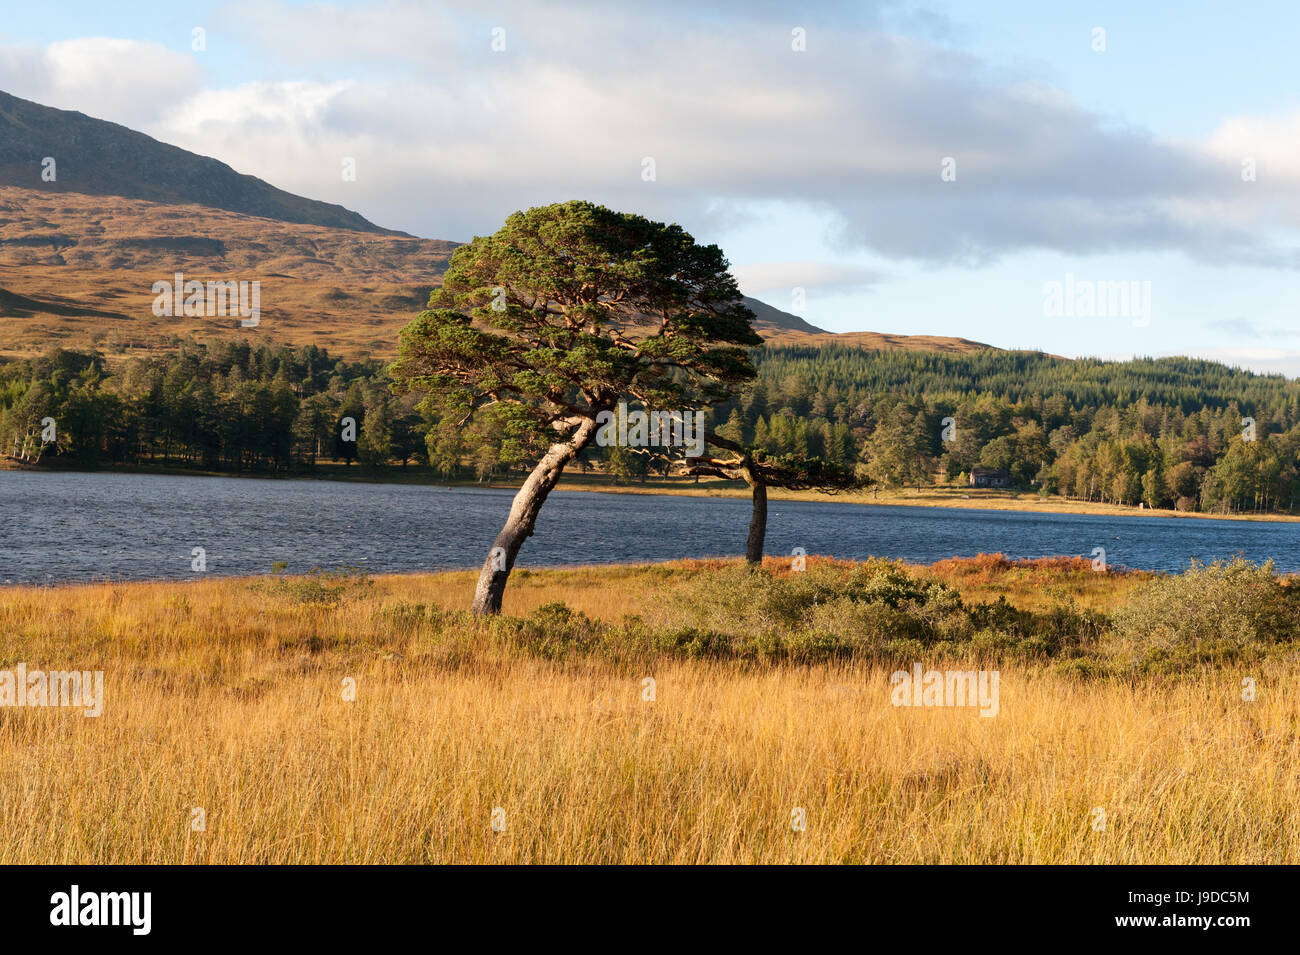 Scottish highlands showing river trees and mountains in autumn colours - Stock Image